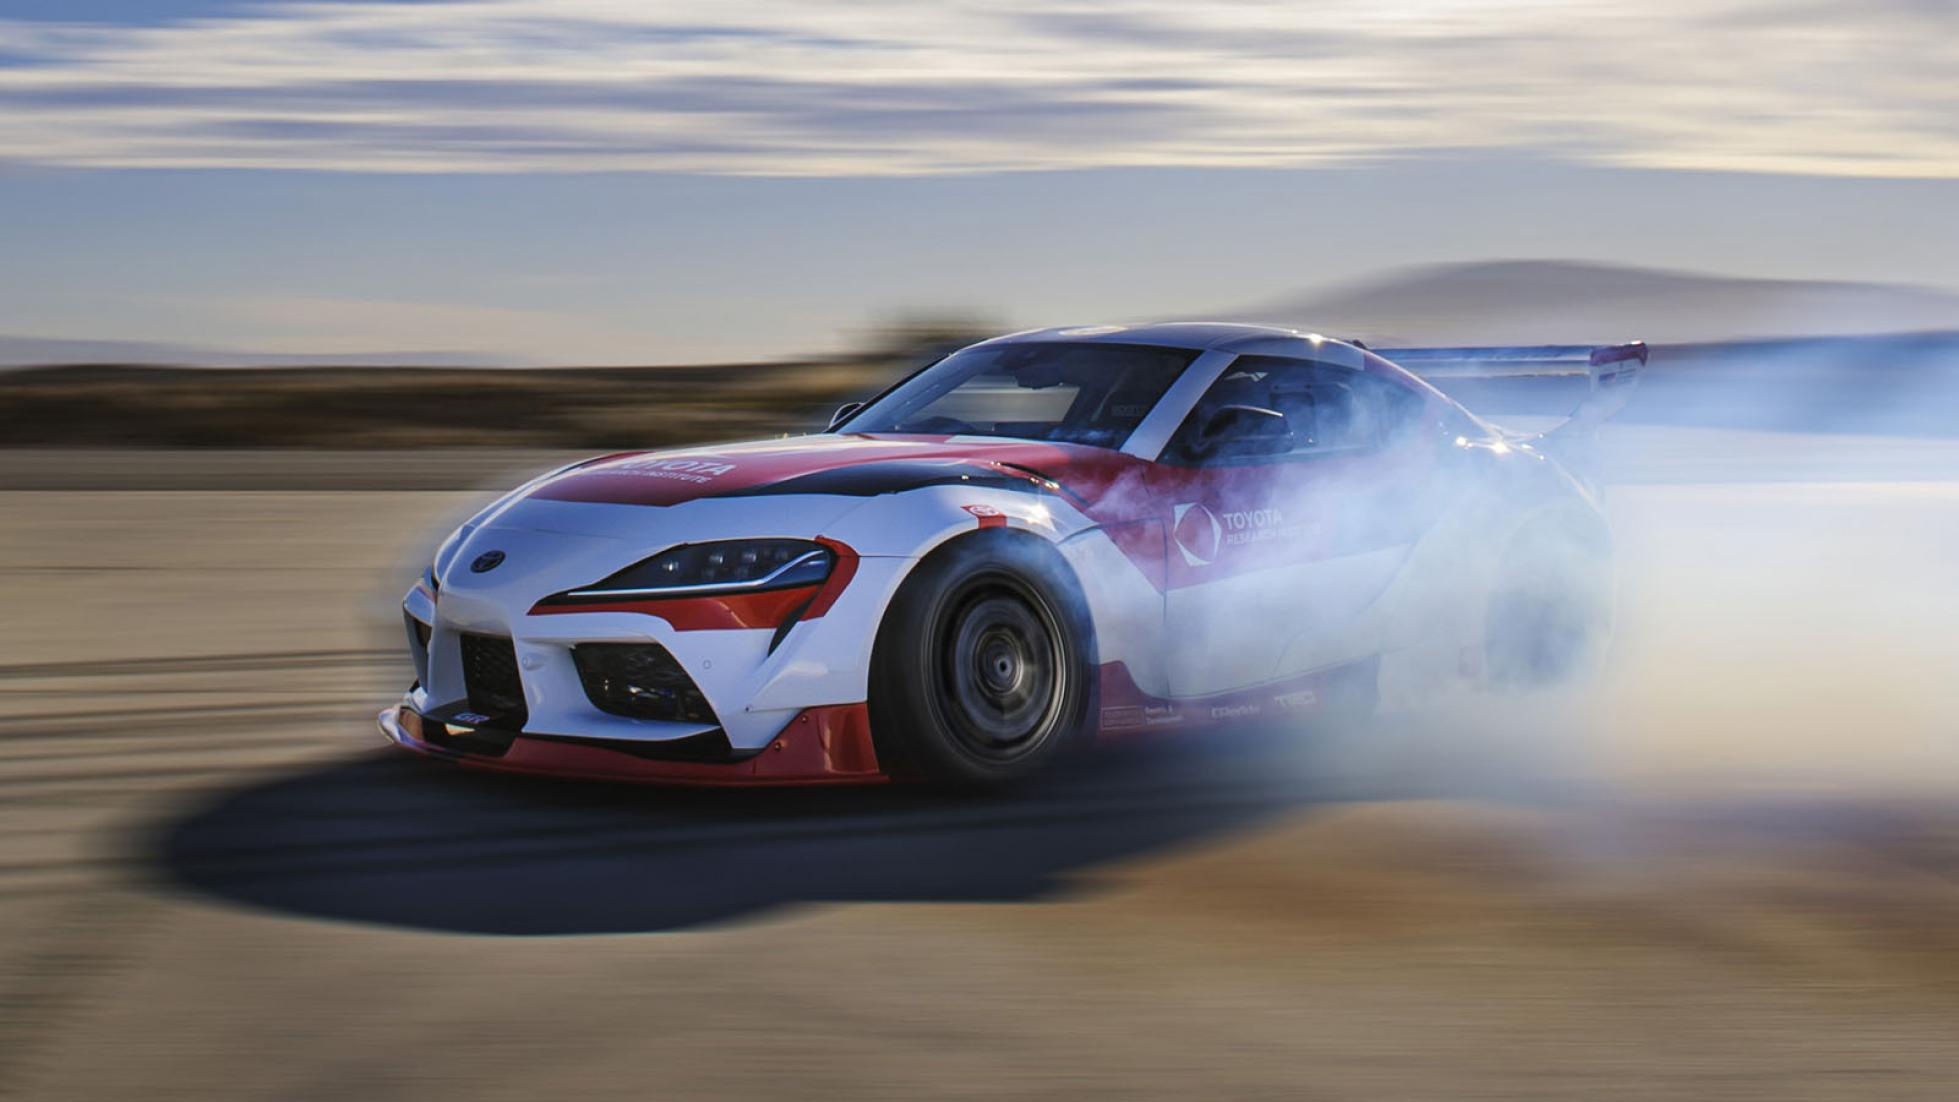 Toyota made a car that can drift by itself